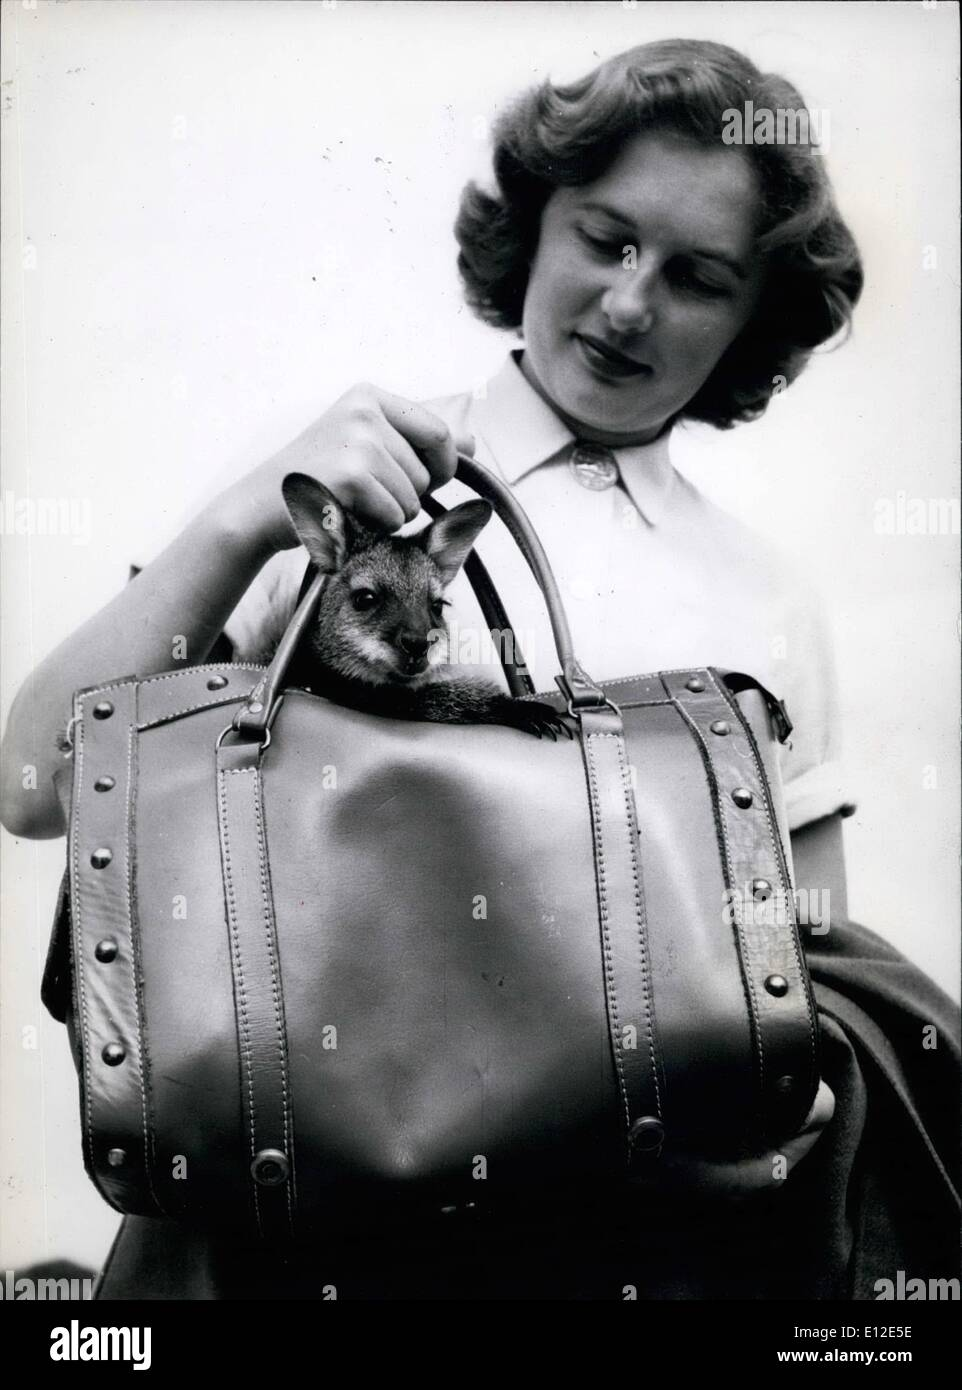 Dec. 20, 2011 - A large leather bag is used as a substitute for mother's pouch, and Penny looks quite comfortable as she - Stock Image